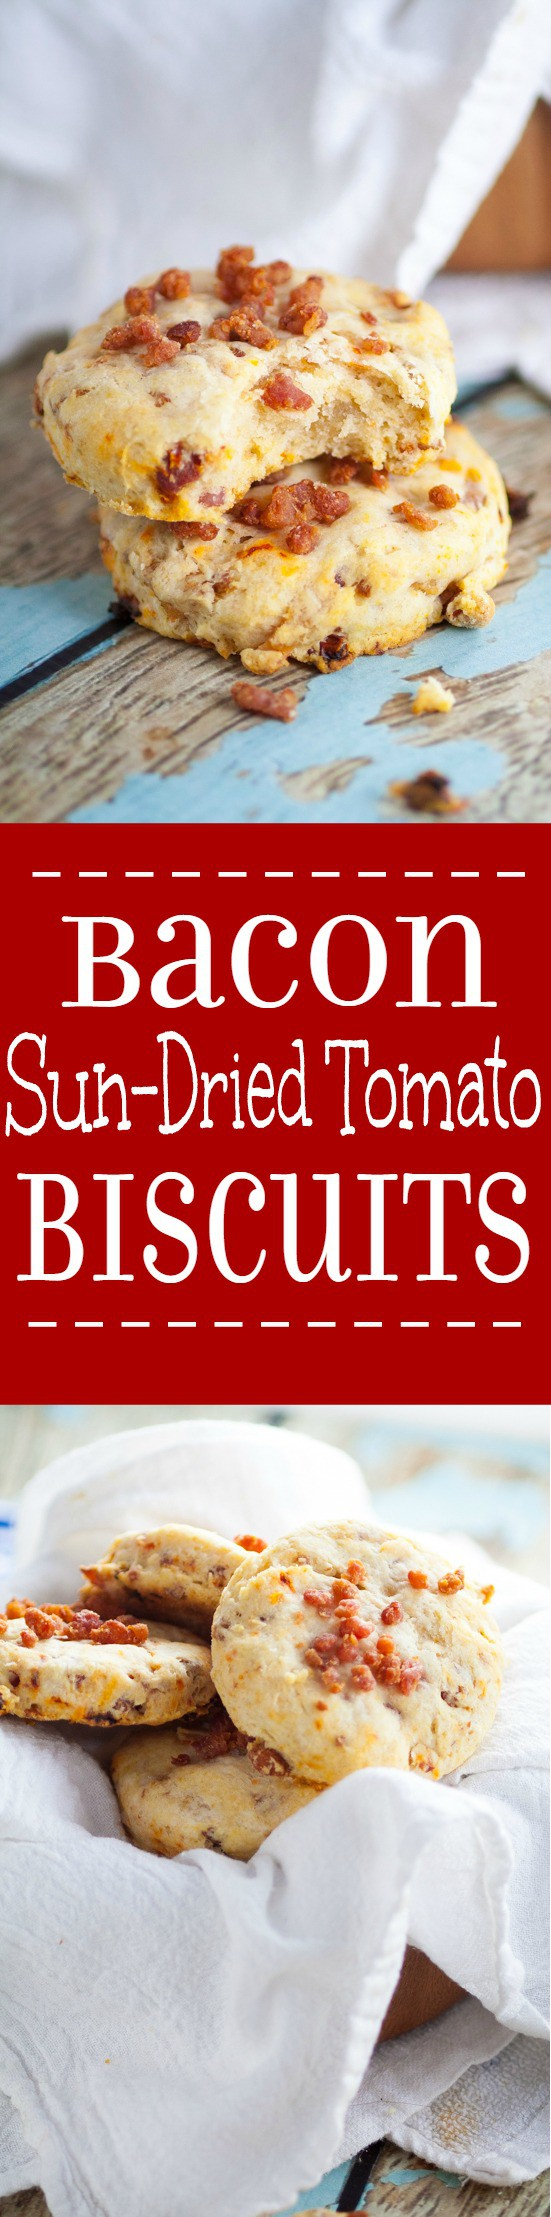 Bacon and Sun Dried Tomato Biscuits make a delicious and easy side dish recipe.  Even better than a traditional biscuits, these Bacon and Sun Dried Tomato Biscuits are flaky and golden with pops of zesty flavor from sun-dried tomatoes and bacon.